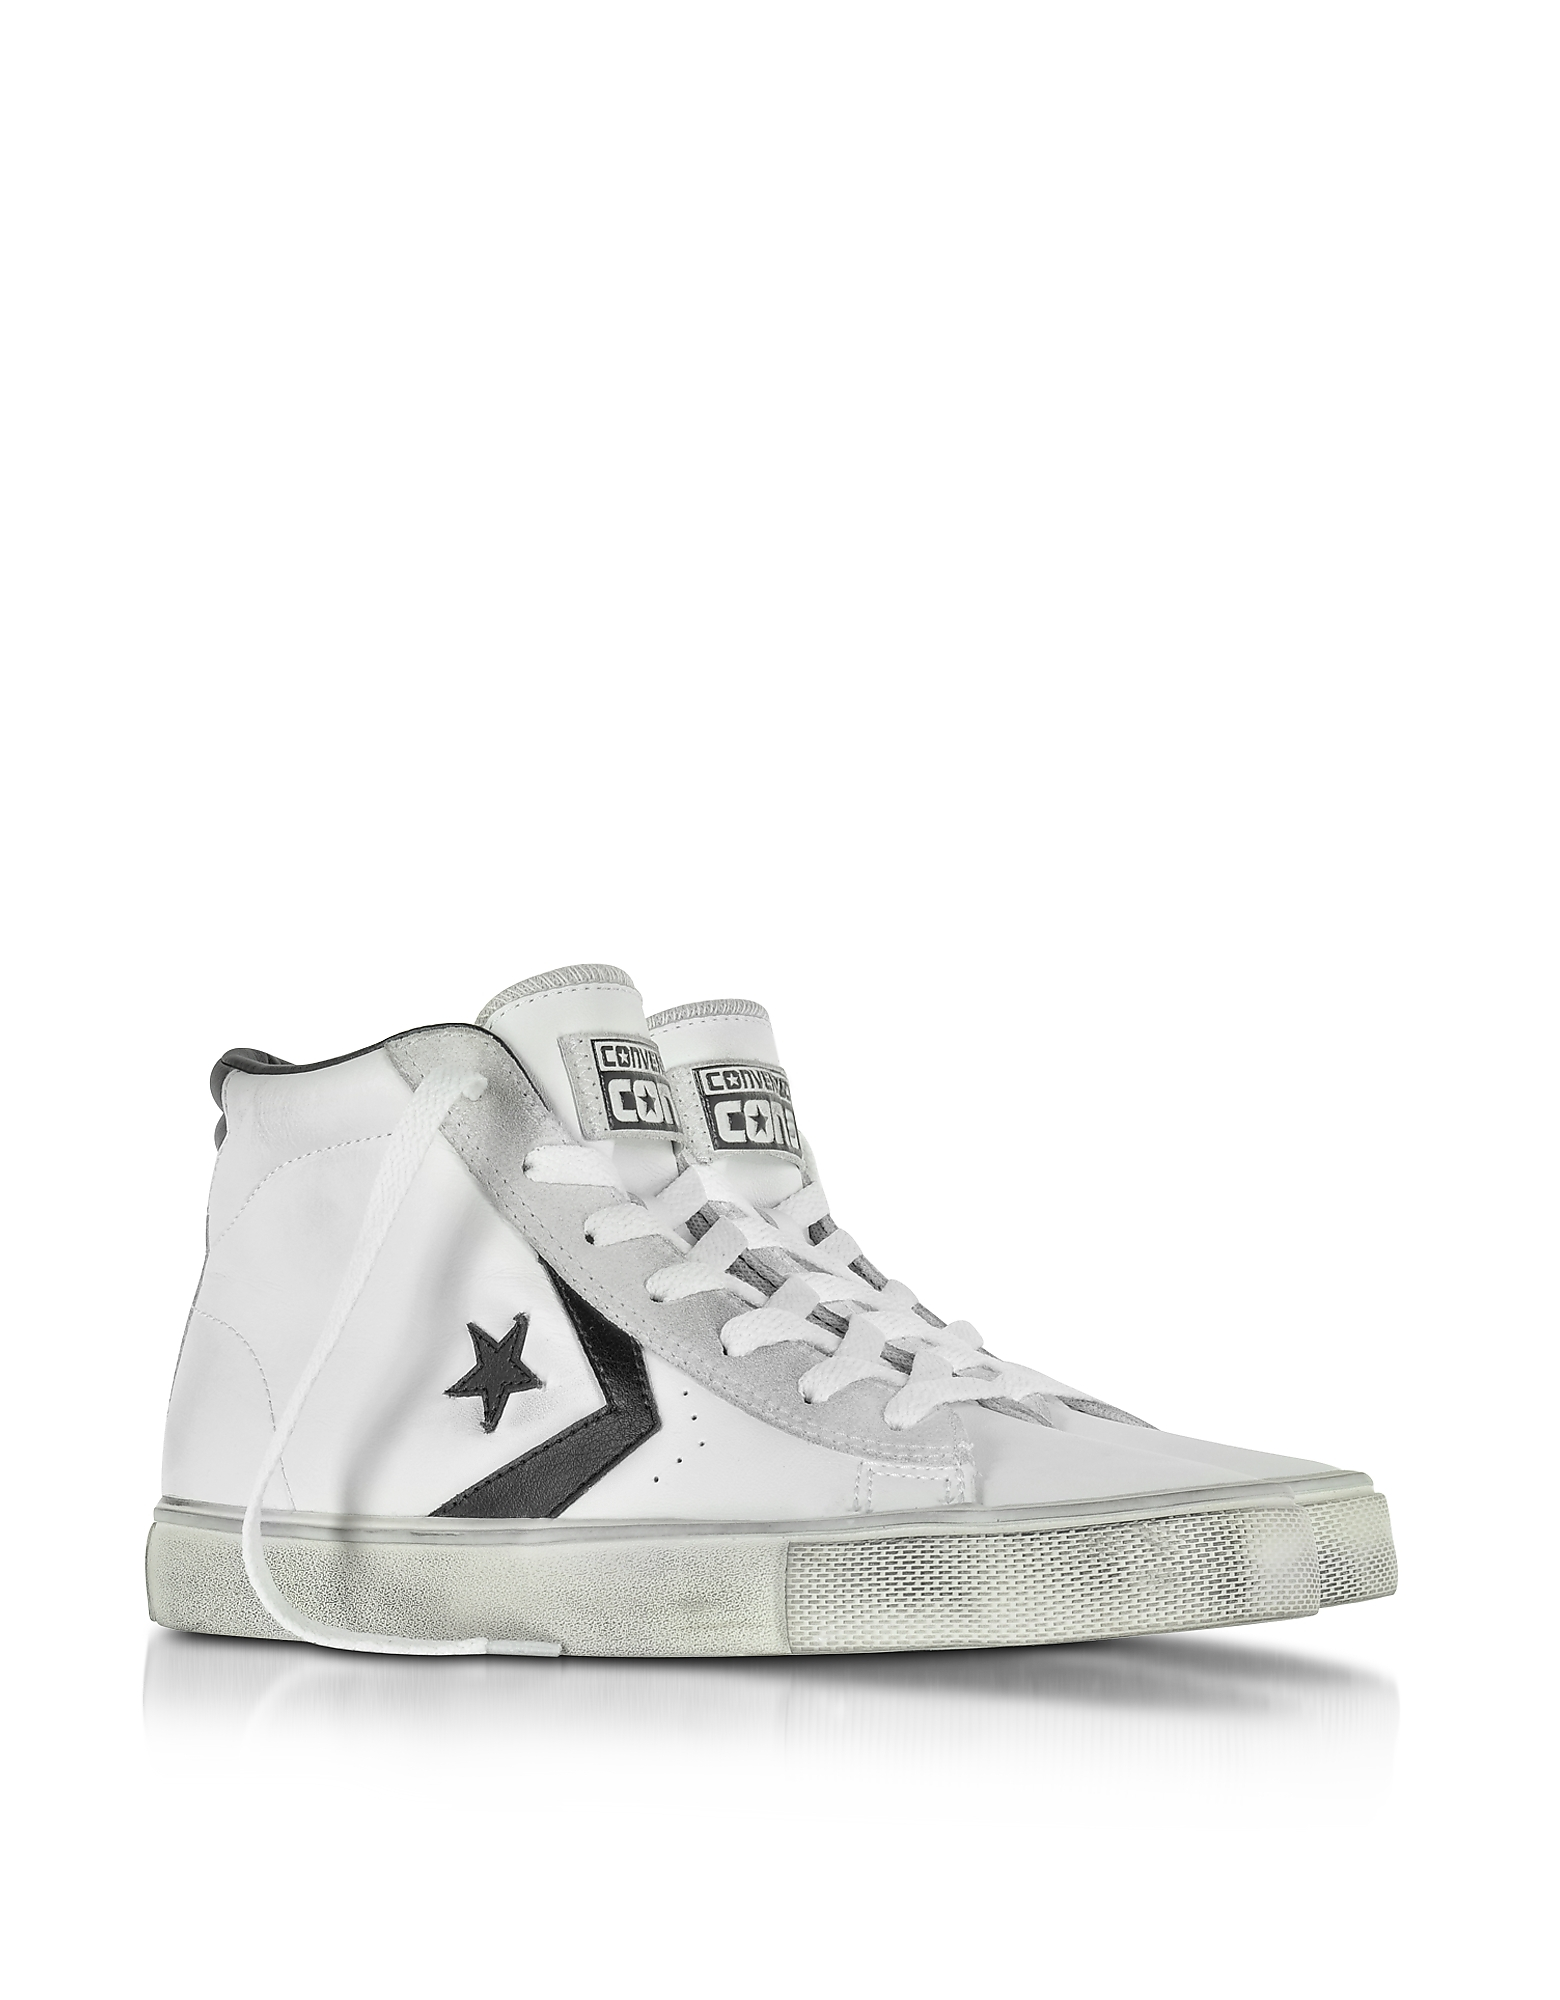 Lyst - Converse Pro Leather Vulc White And Black Mid Top Unisex ... 4dd37091fbb8